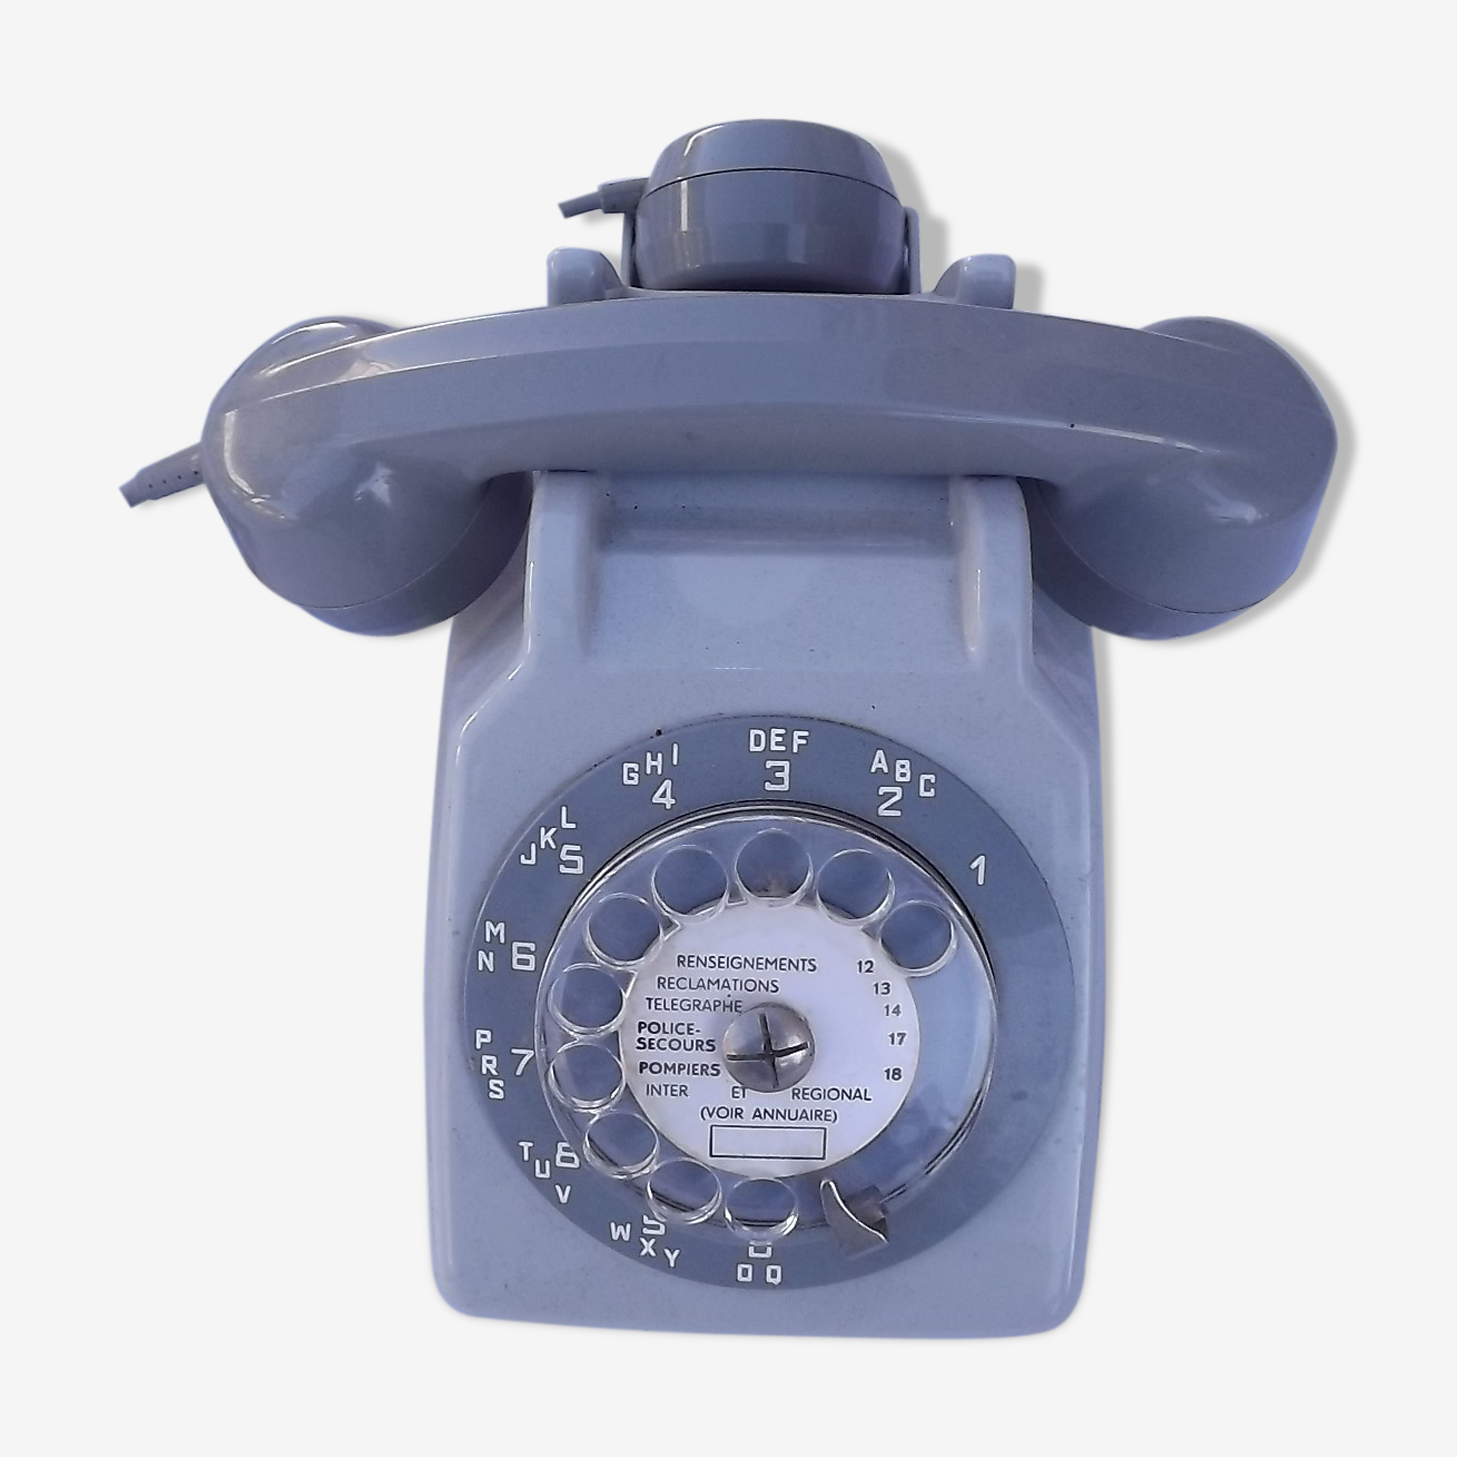 Vintage PTT dial telephone, 70's